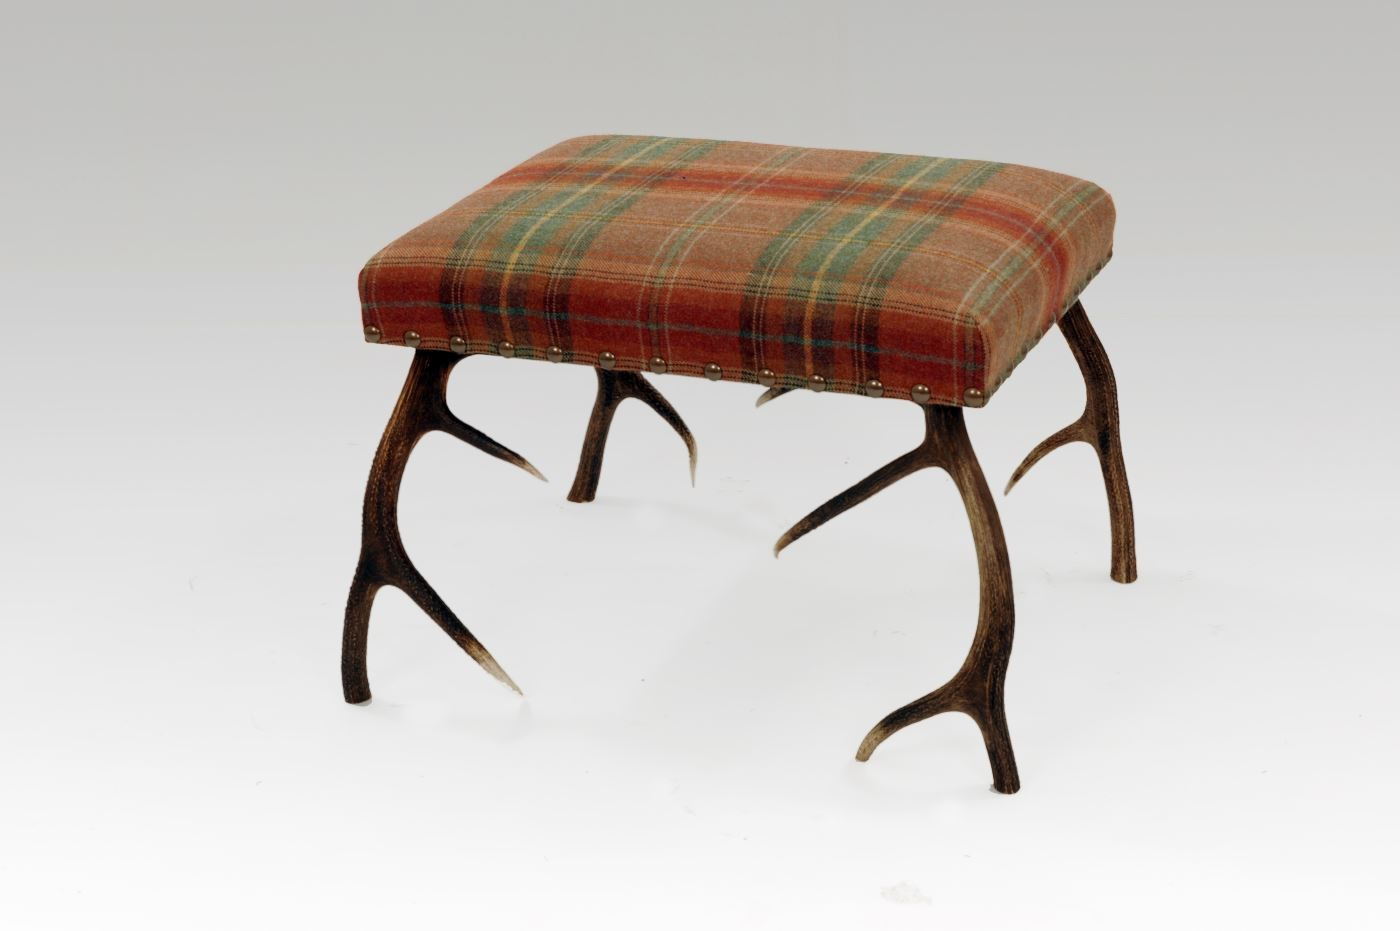 Inverness Stool